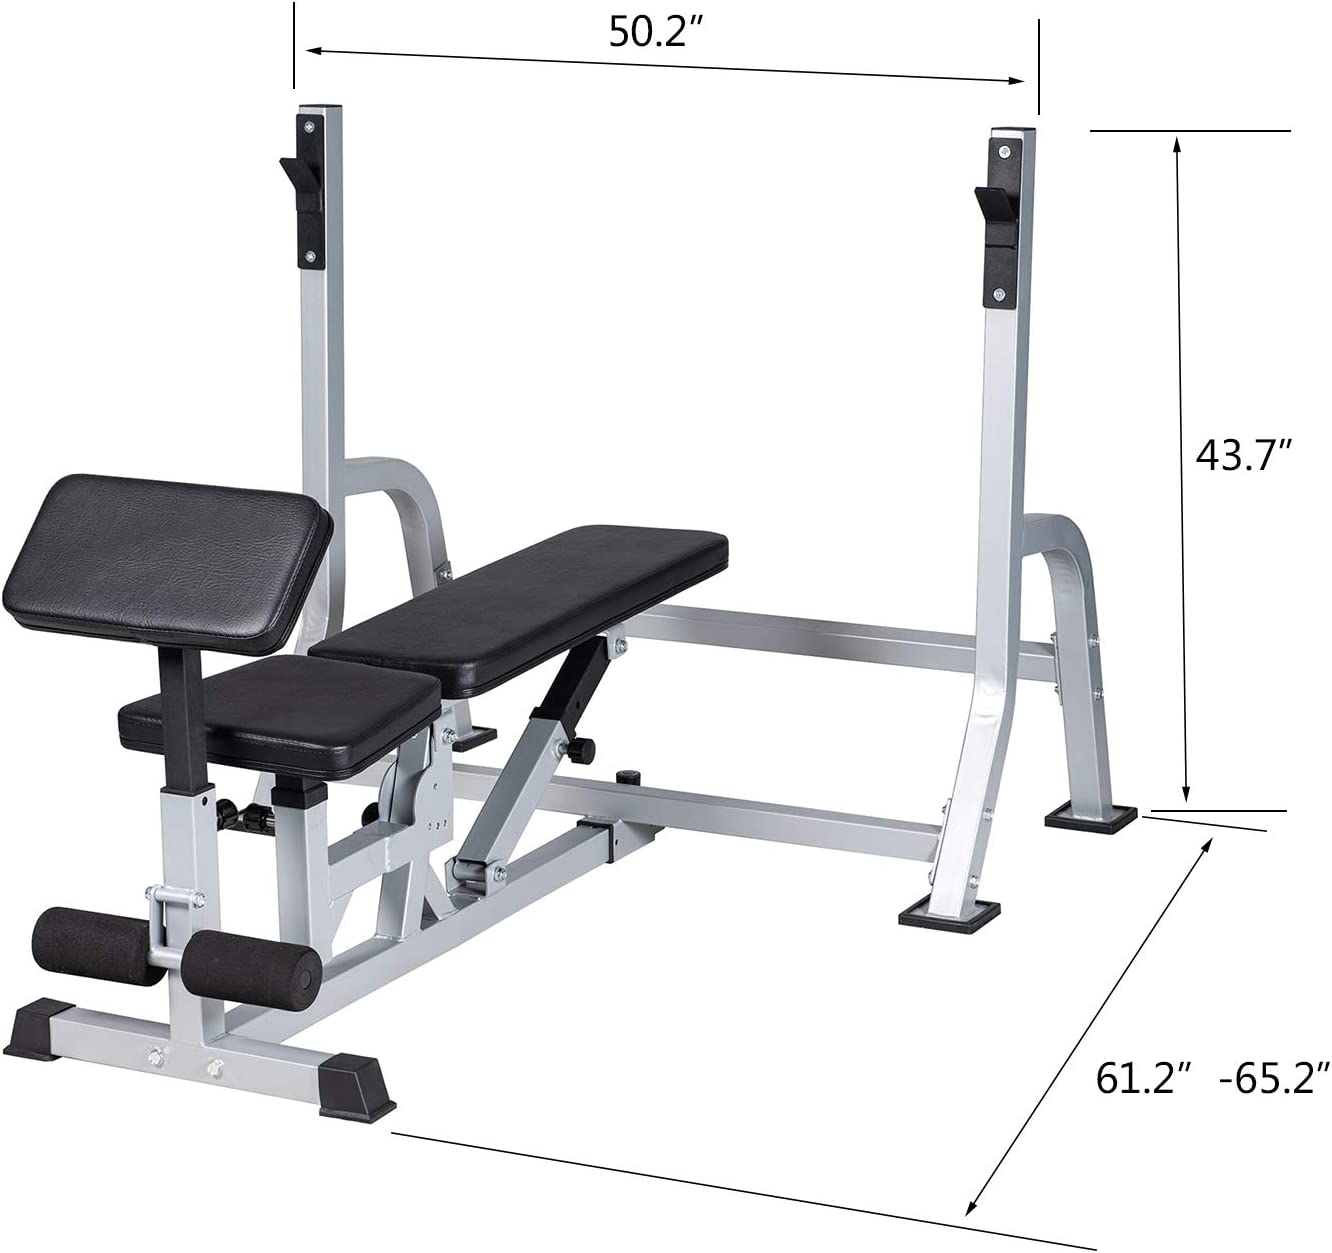 BuyHive Weight Bench Multifunctional Bench Press Weight Lifting Workout Strength Training